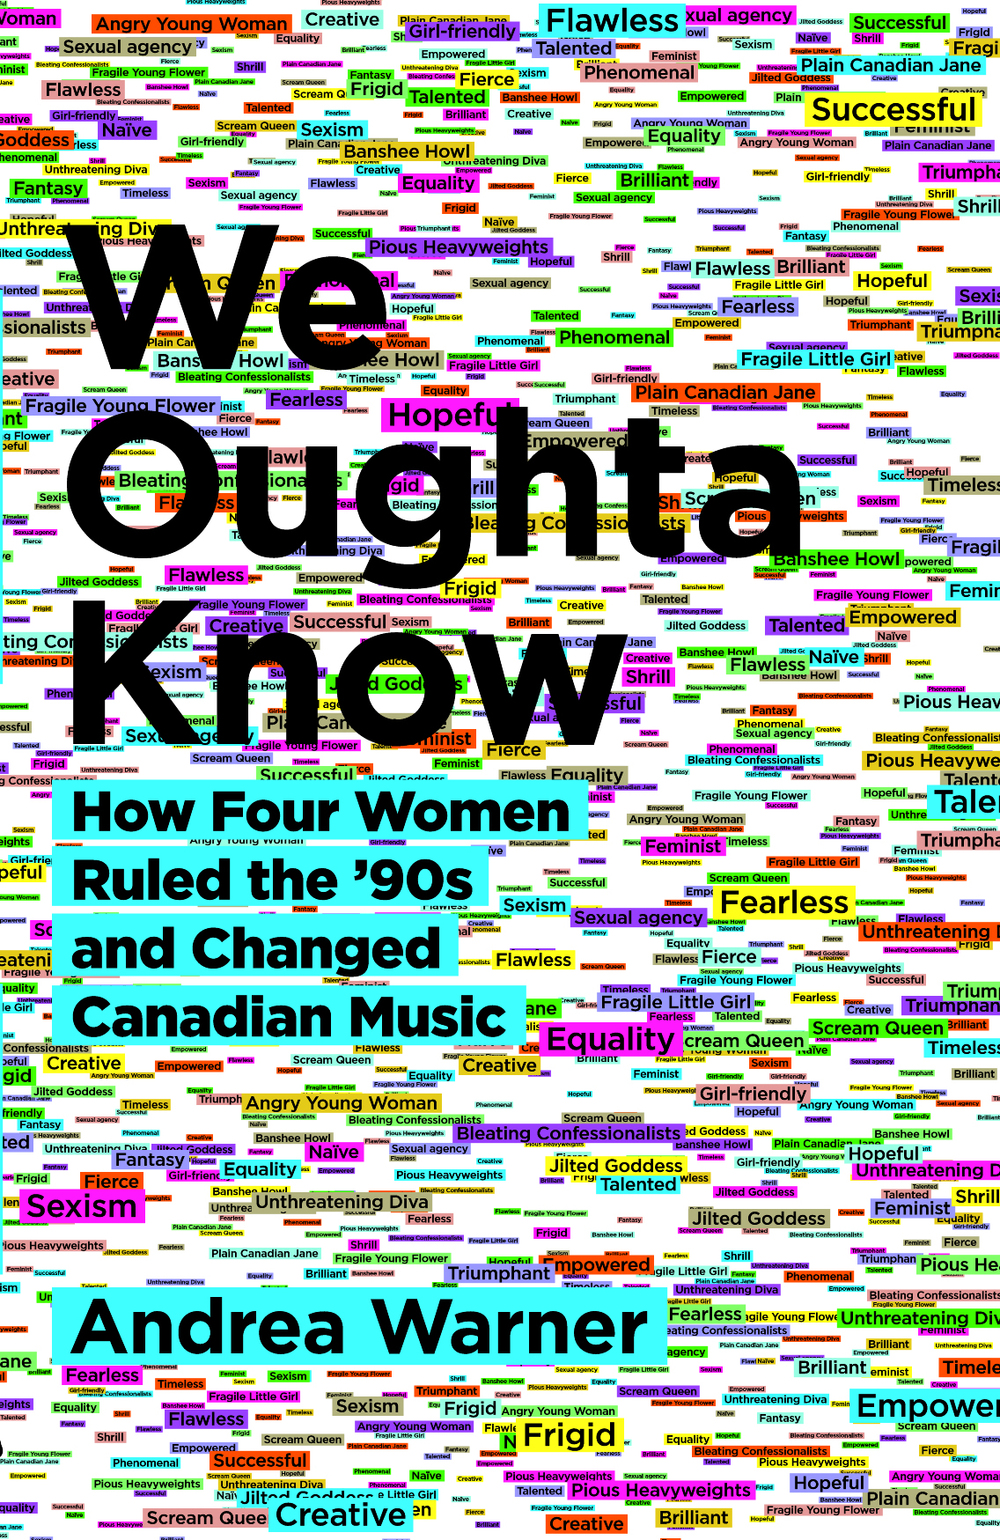 We Oughta Know Cover - Front.jpg